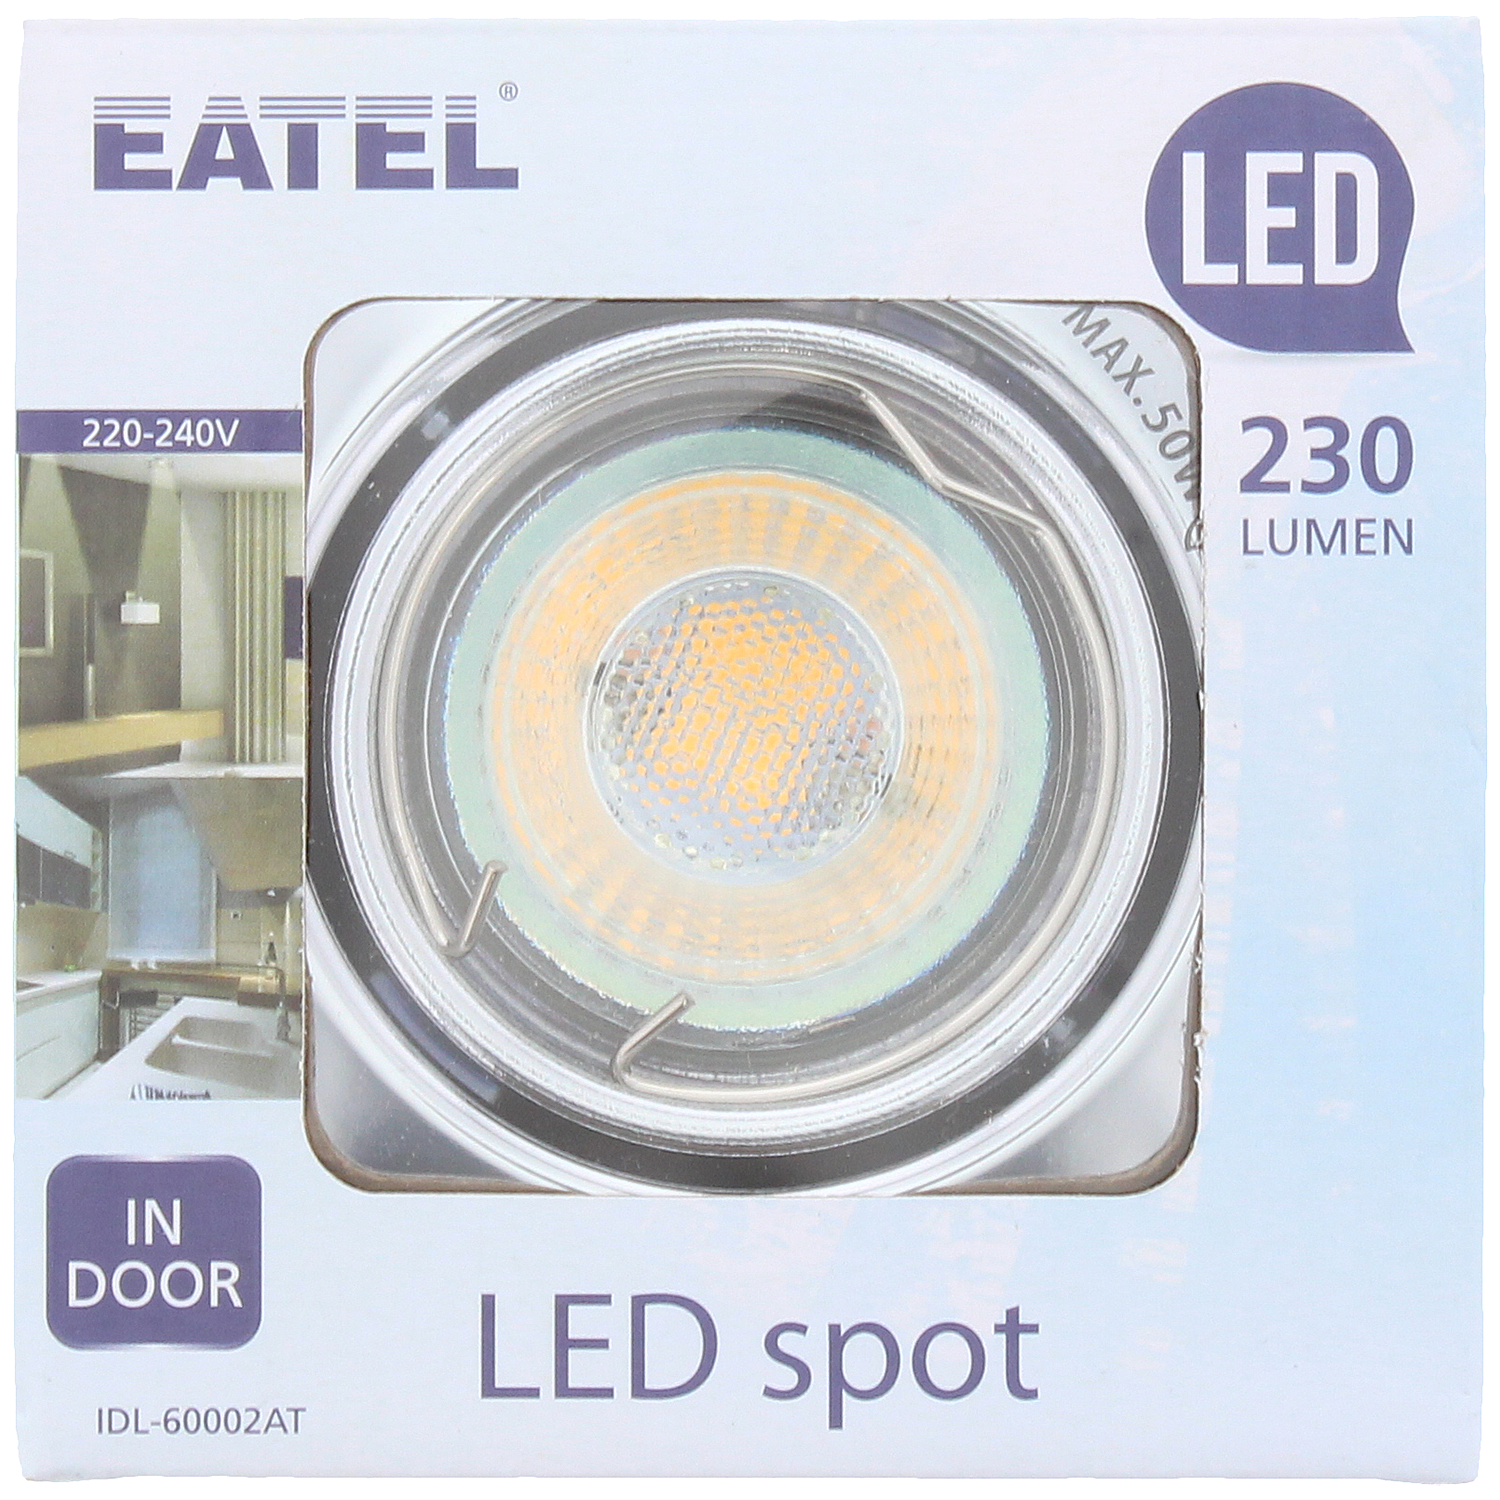 Eatel LED inbouwspot 230 lumen | Action.com